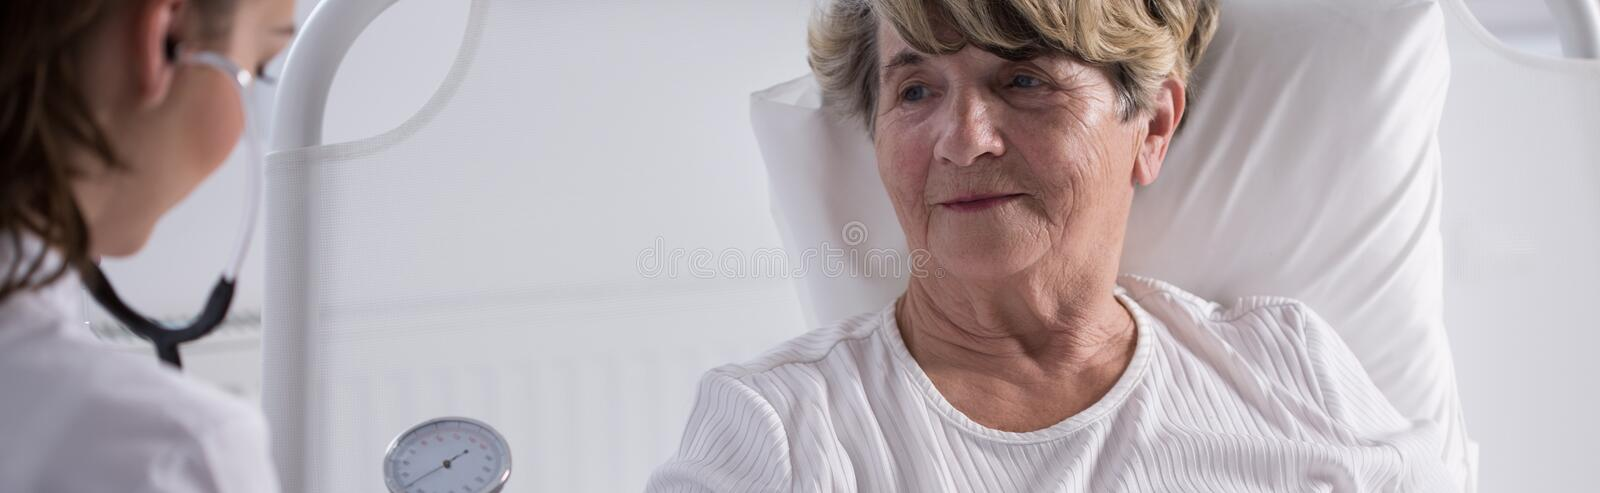 Elderly lady examined by doctor stock images